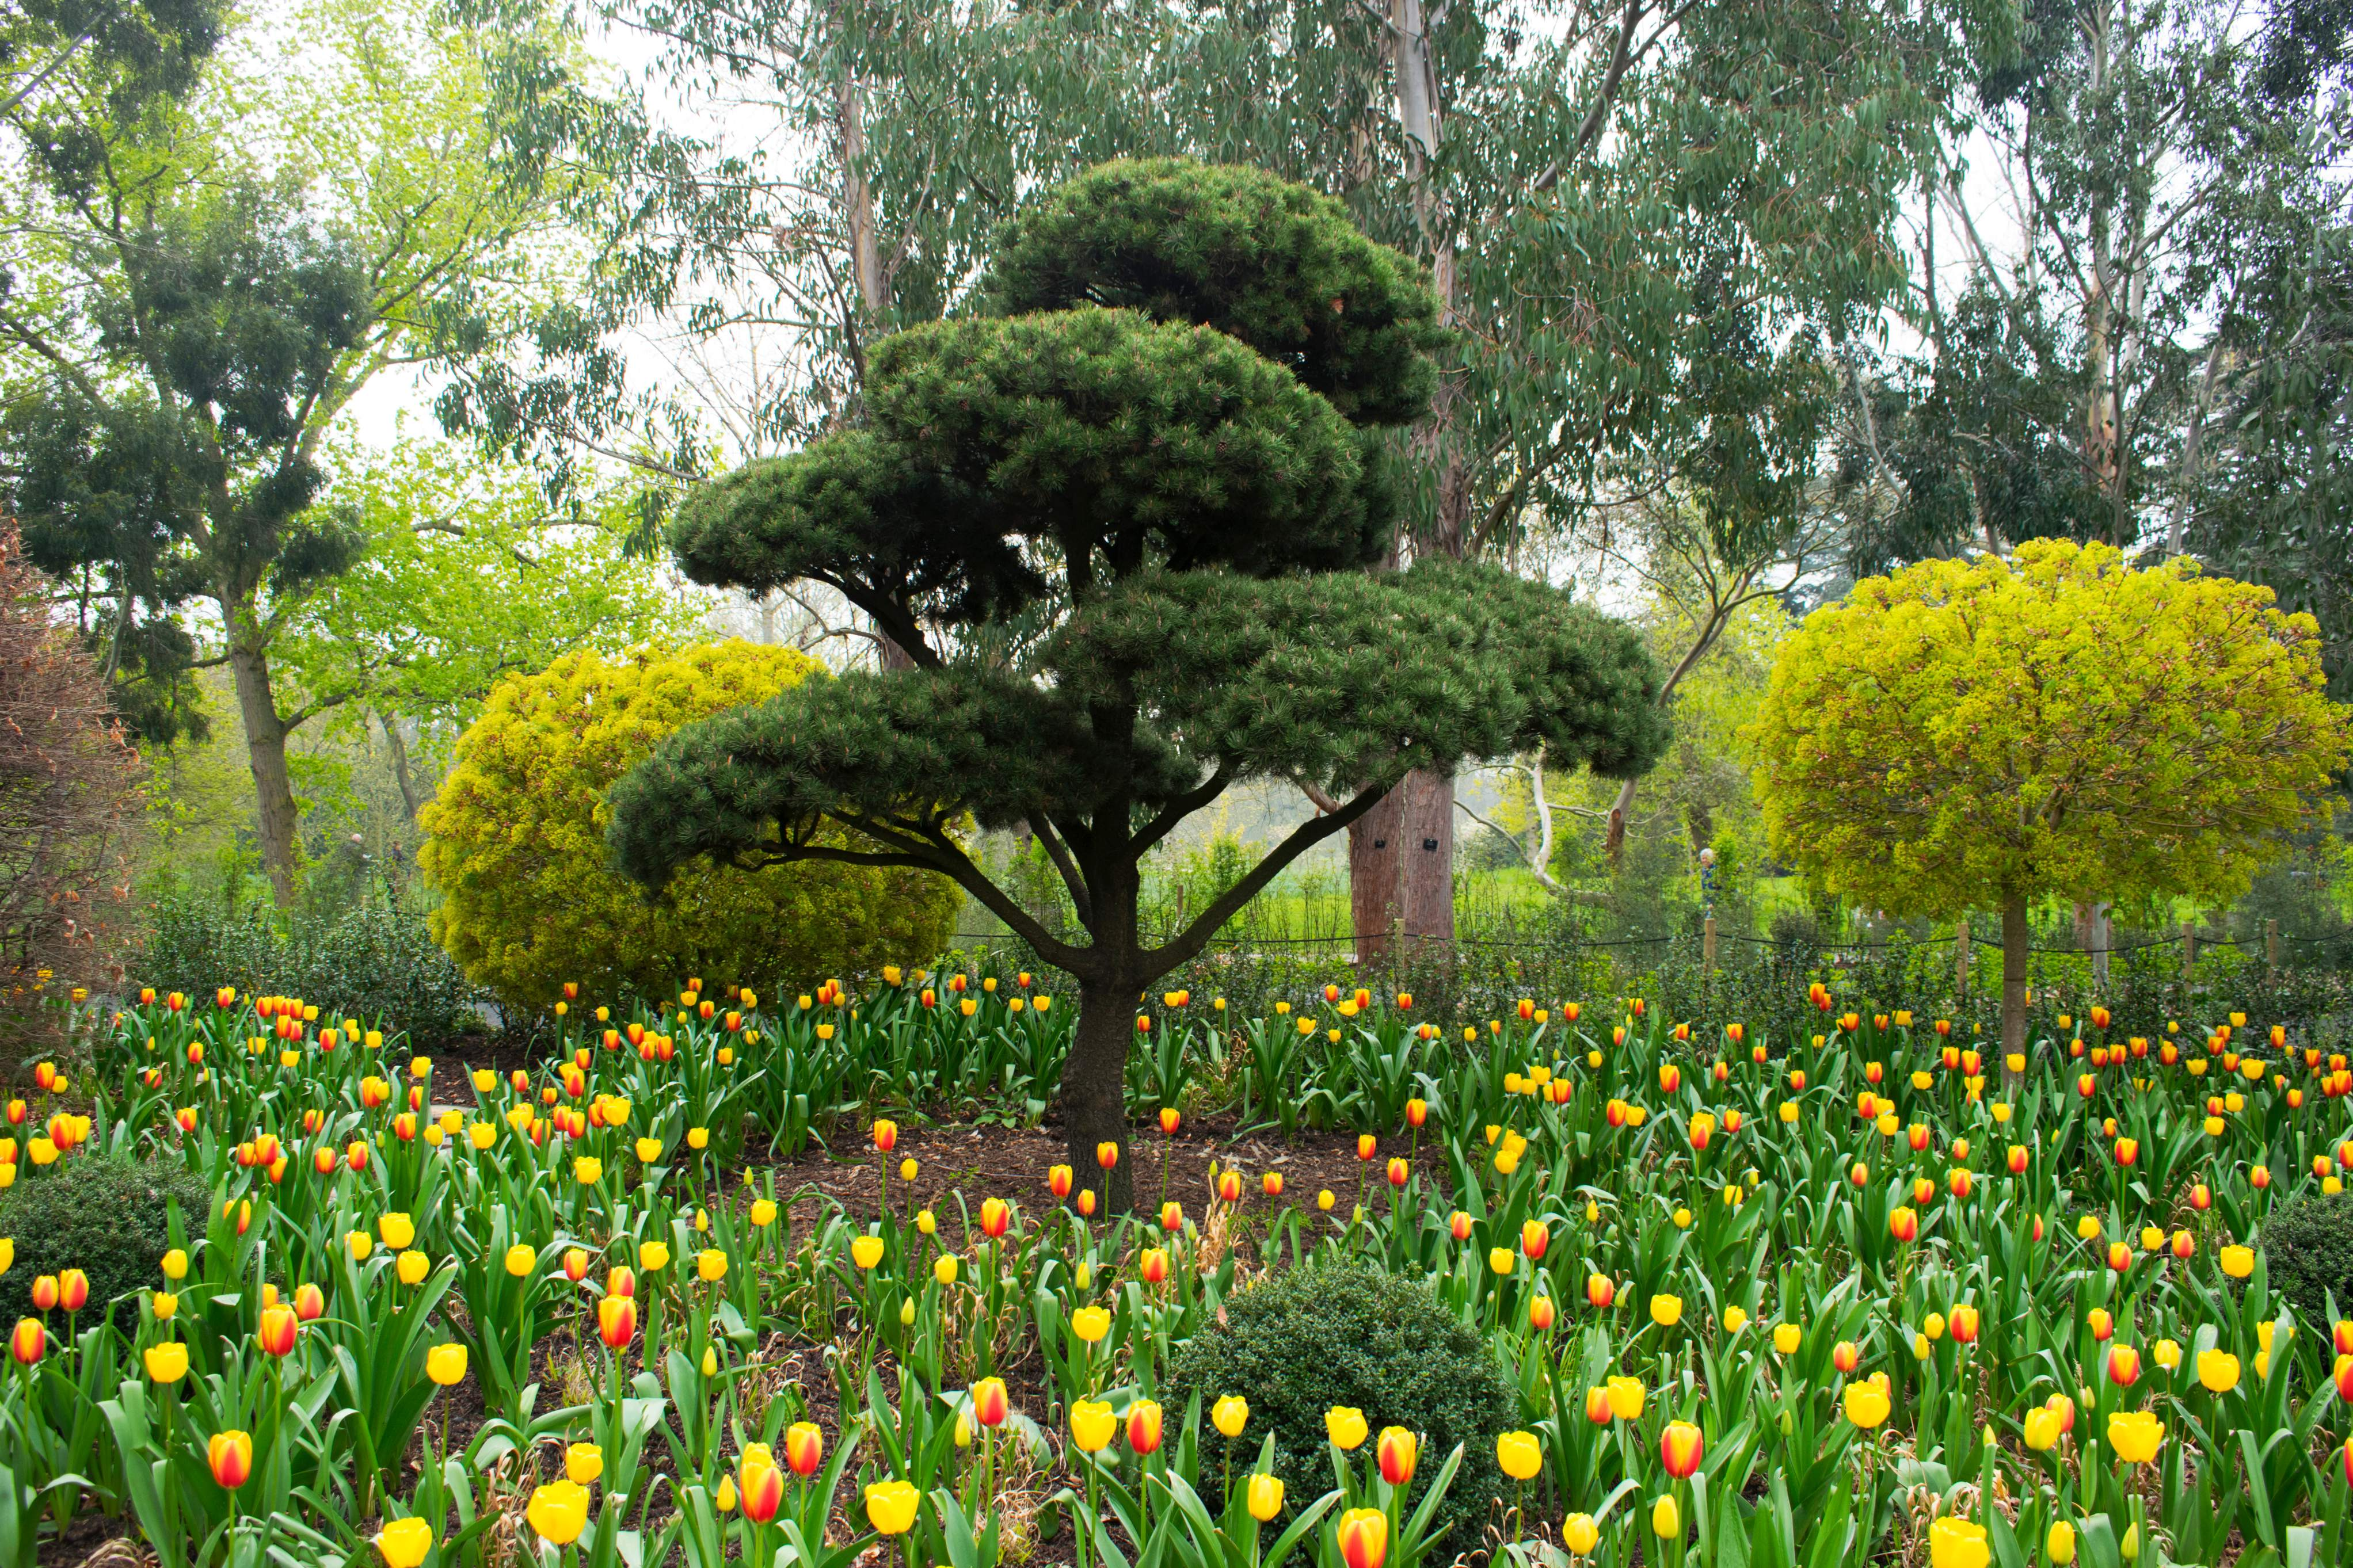 A tree stands in a garden of tulips